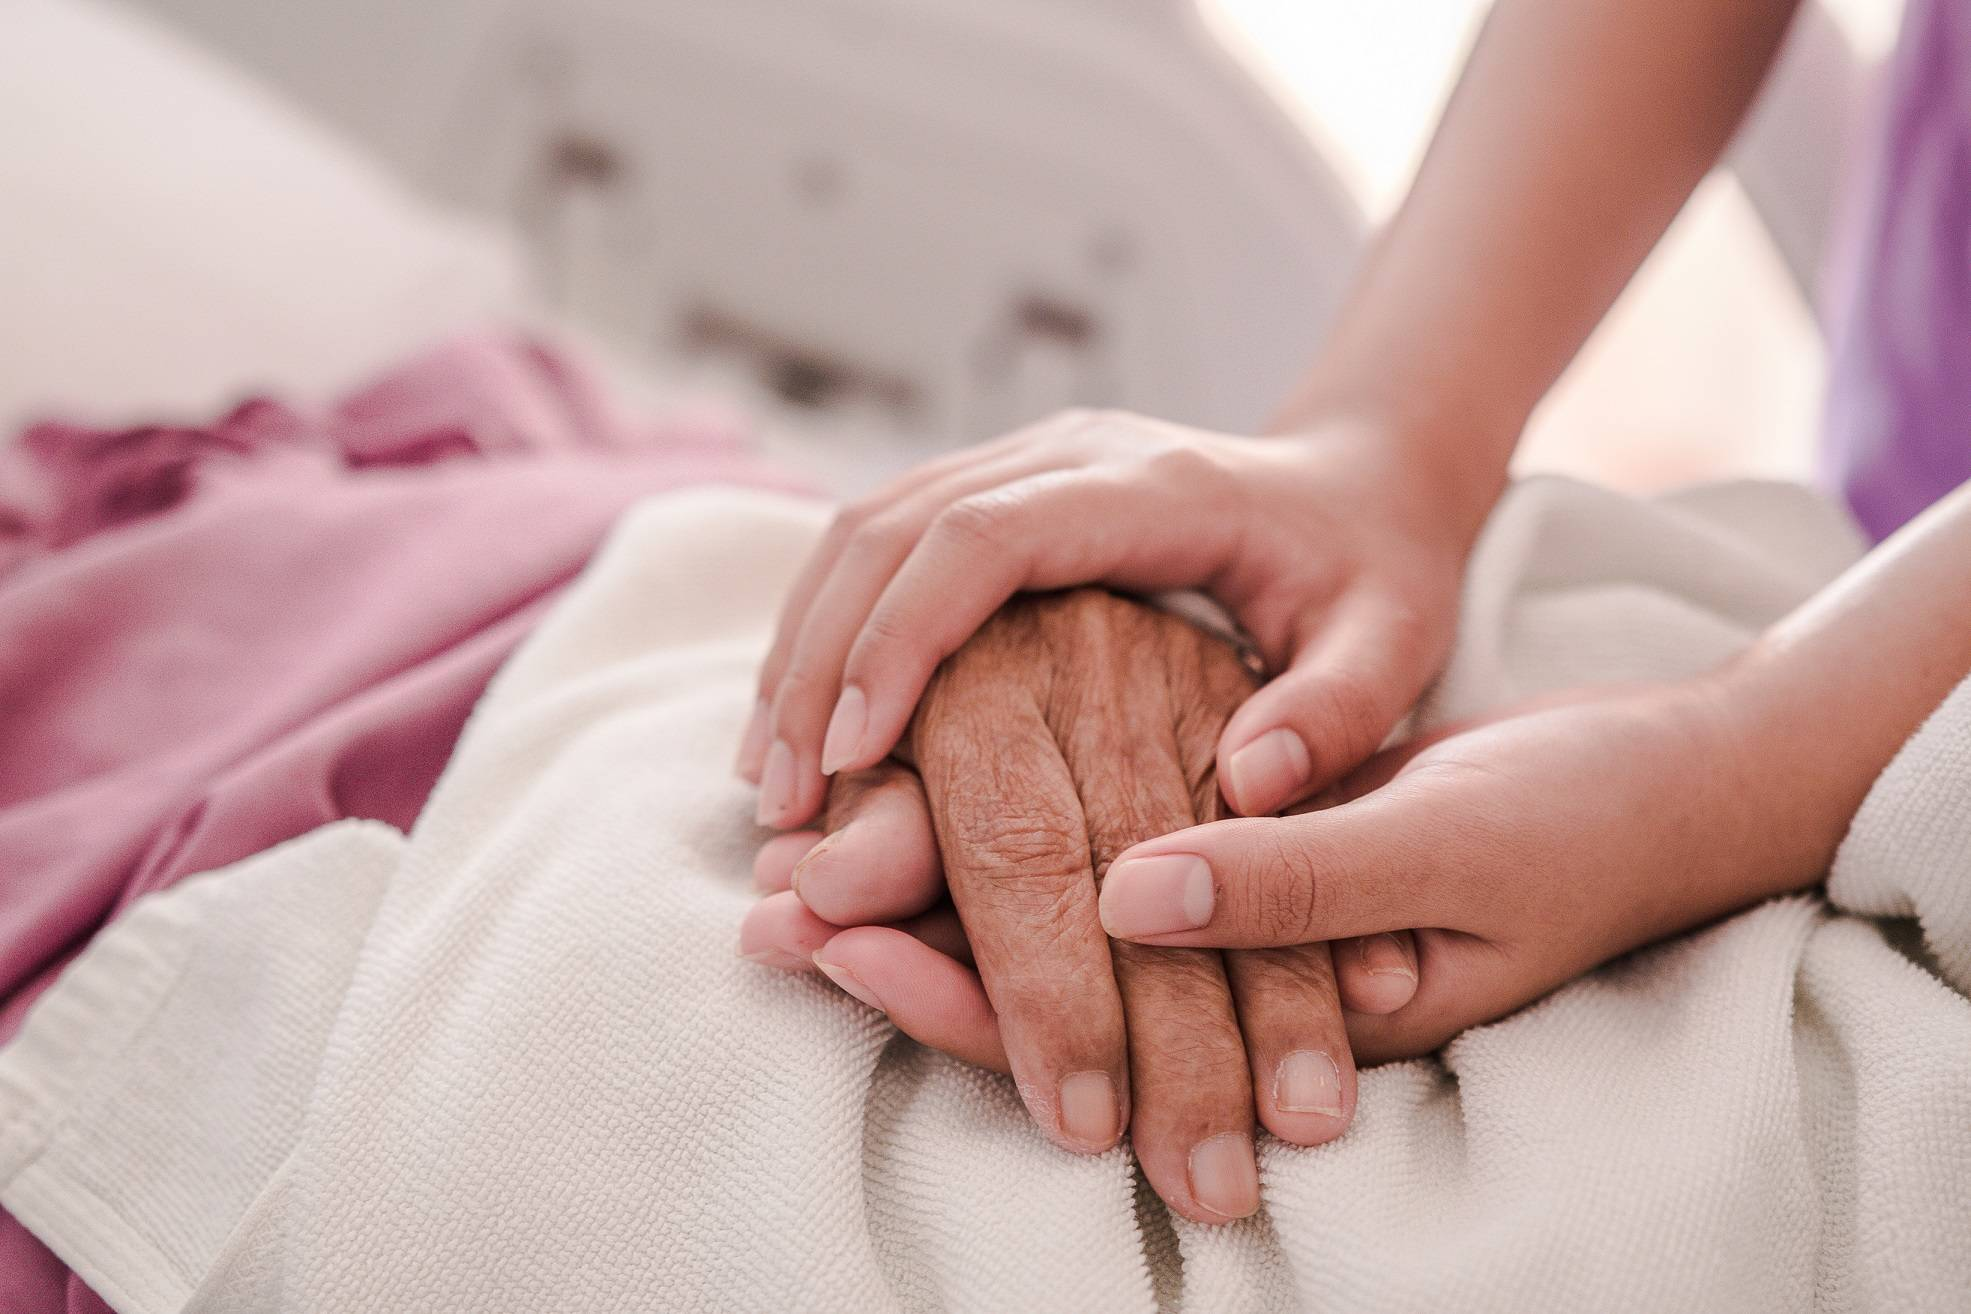 Young person holding hands with older person